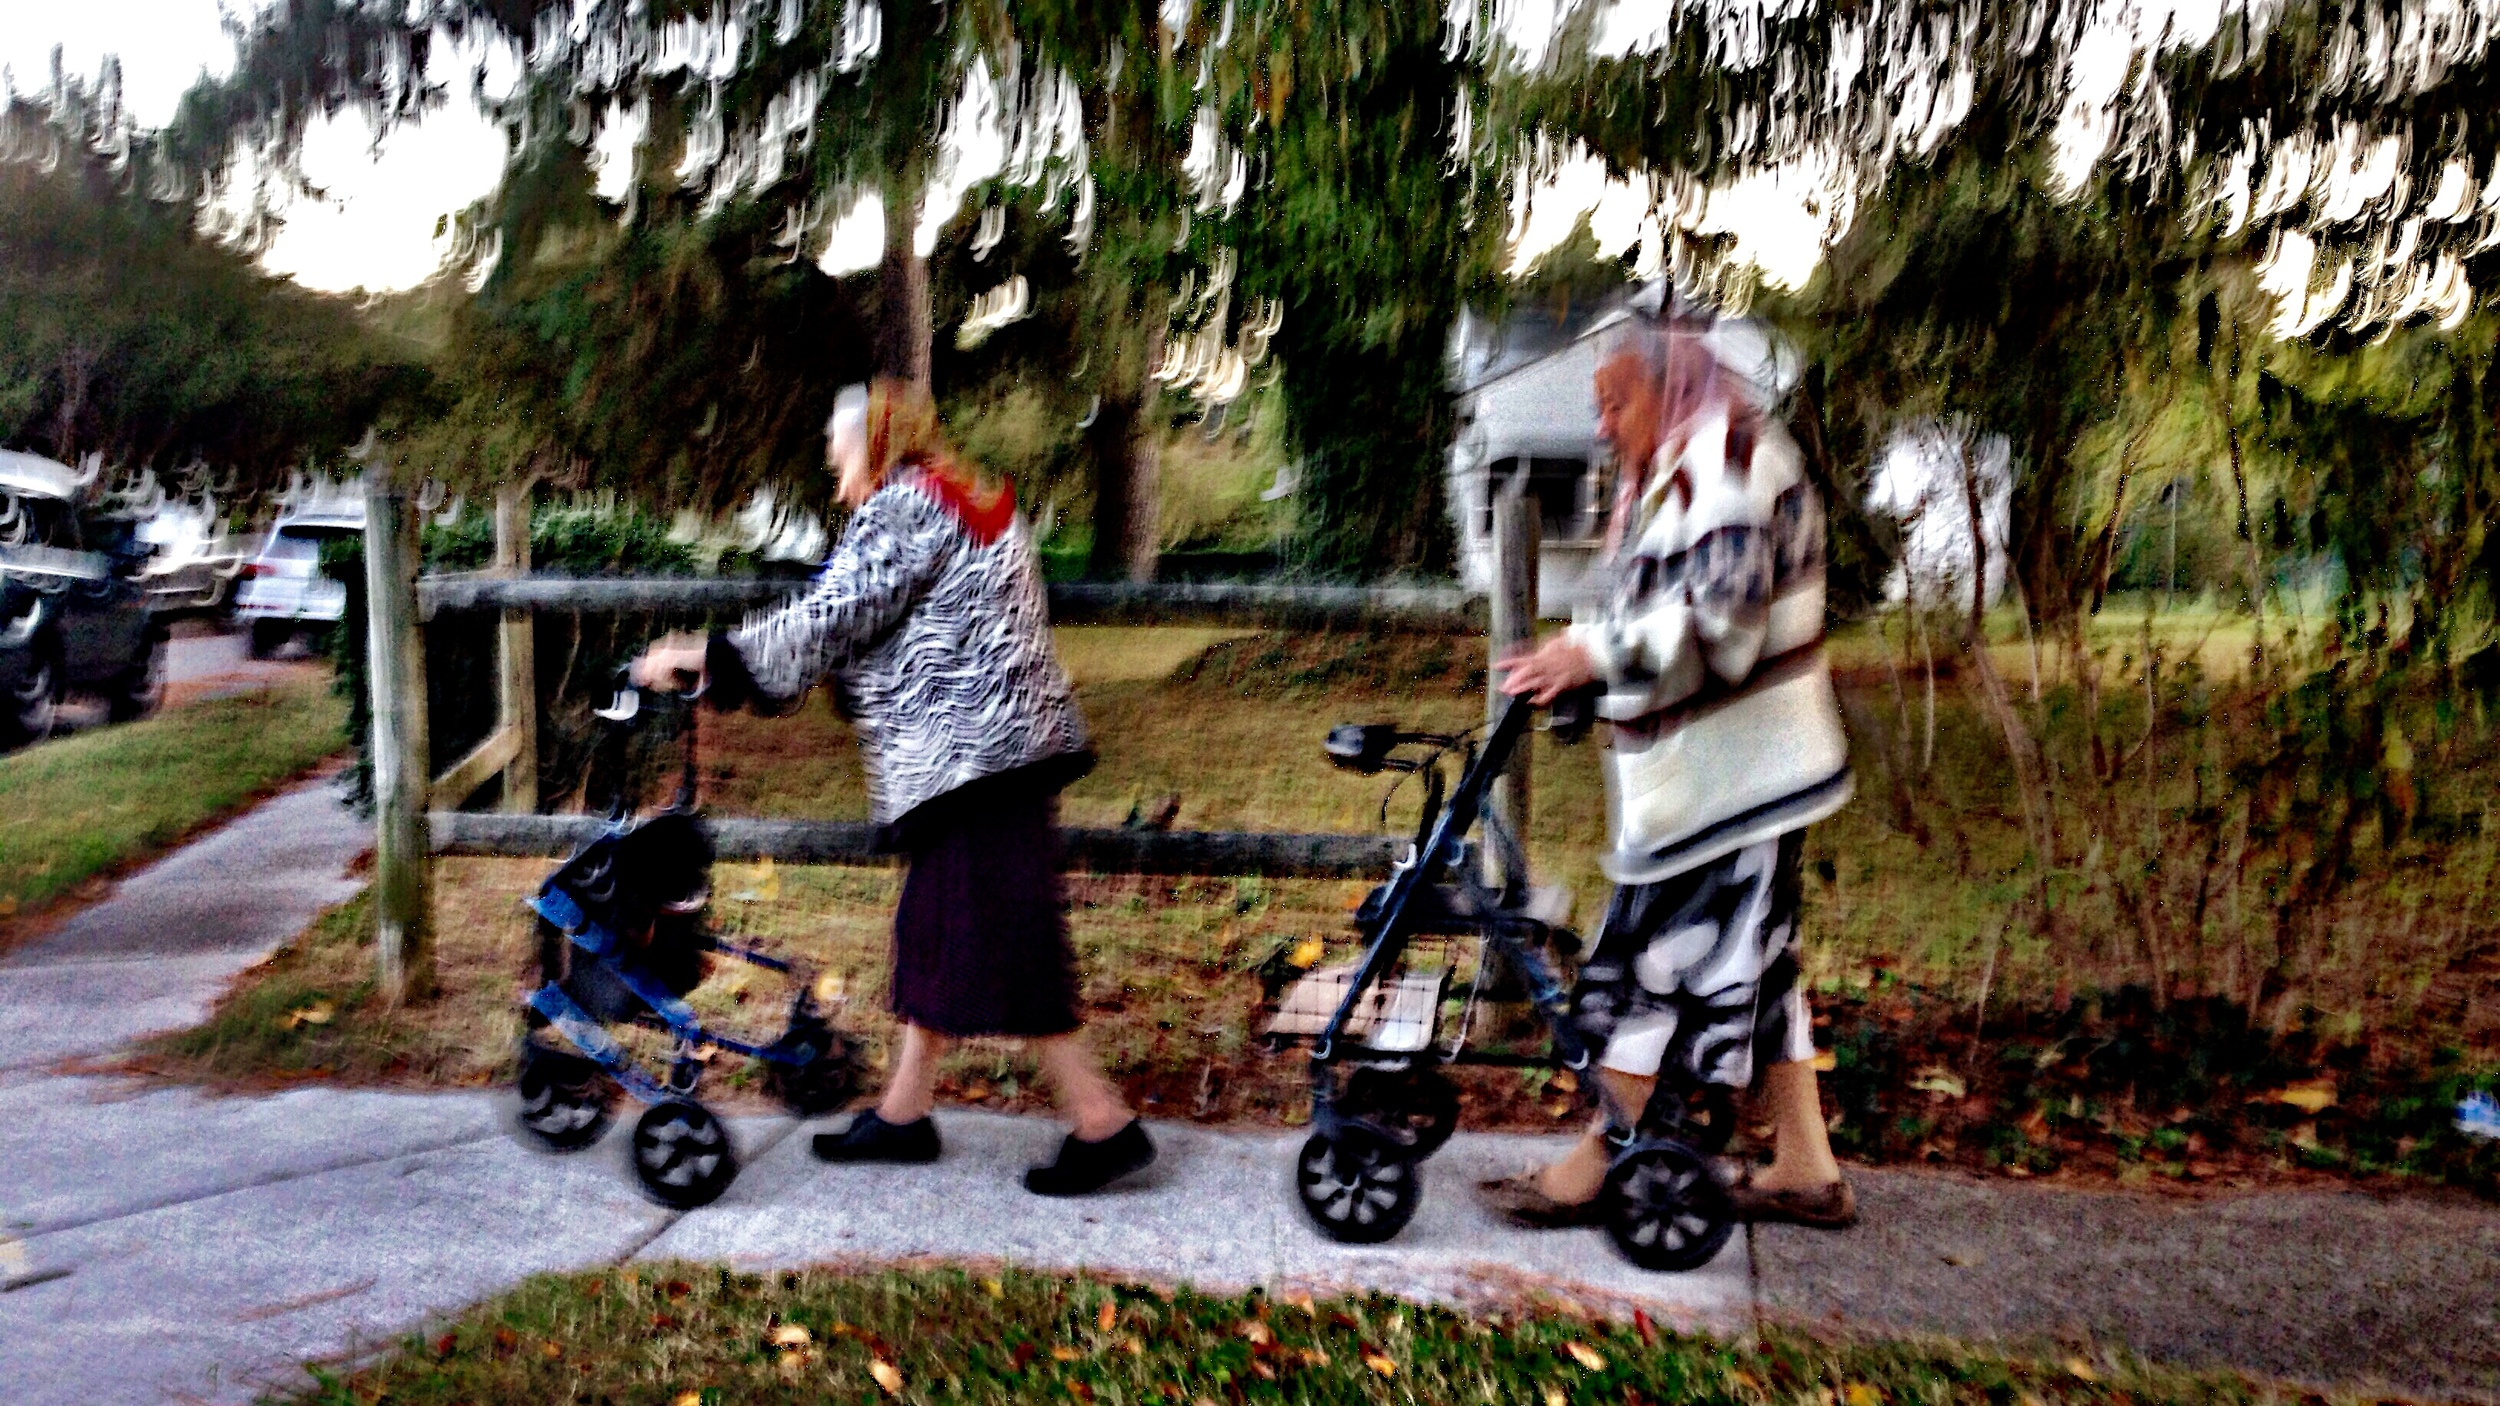 I spotted the Suburban Parkway ladies. Again.